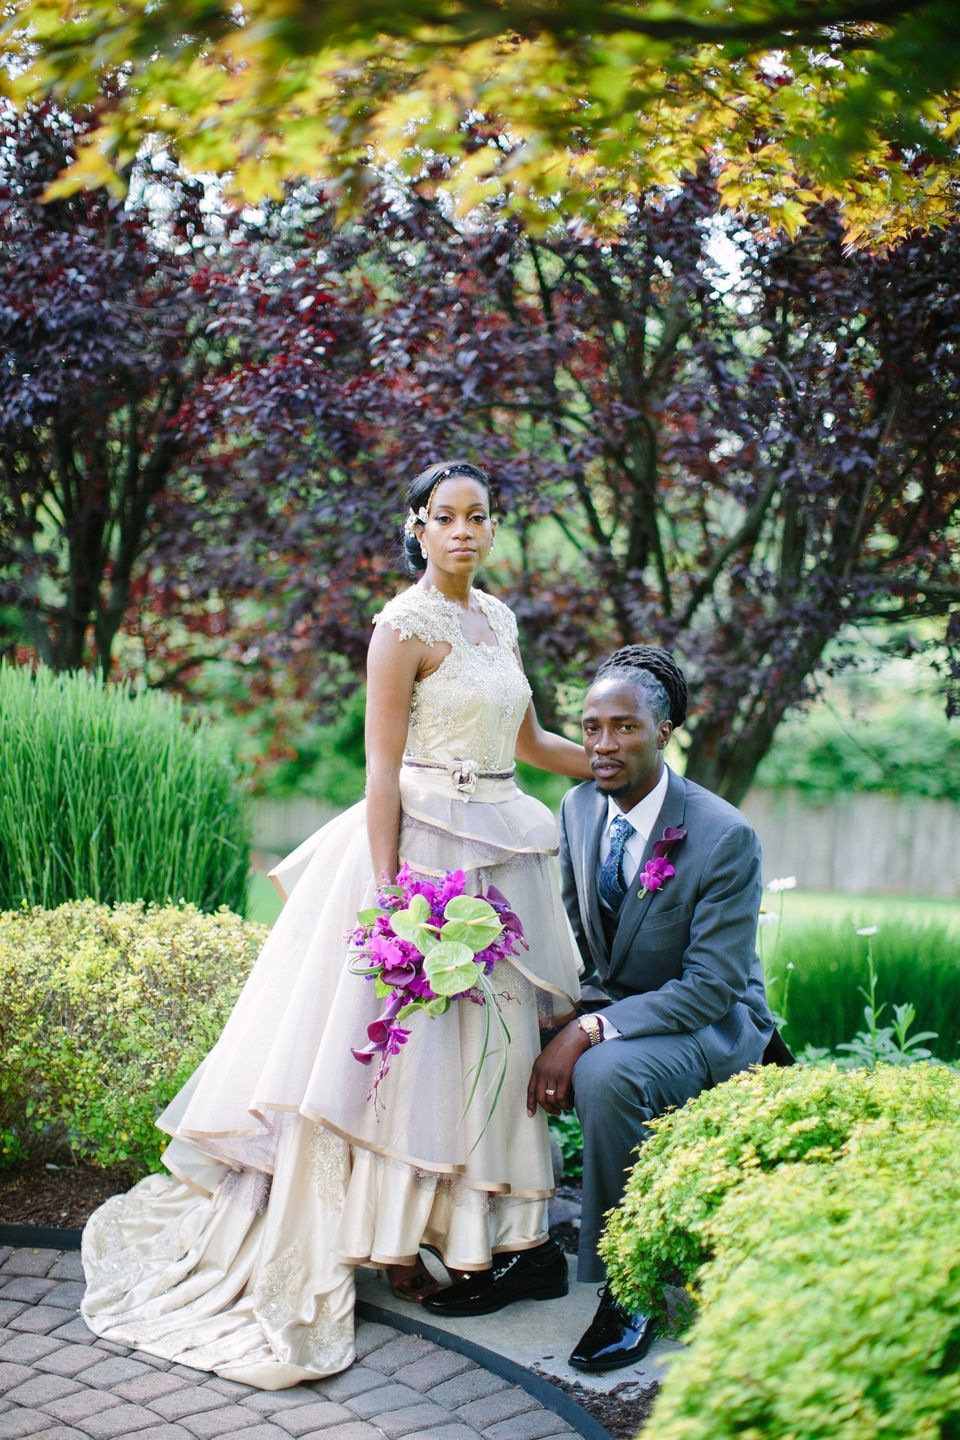 fb5fd6e0e6 11 Talented Brides Who DIYed Their Own Wedding Gowns And Impressed ...